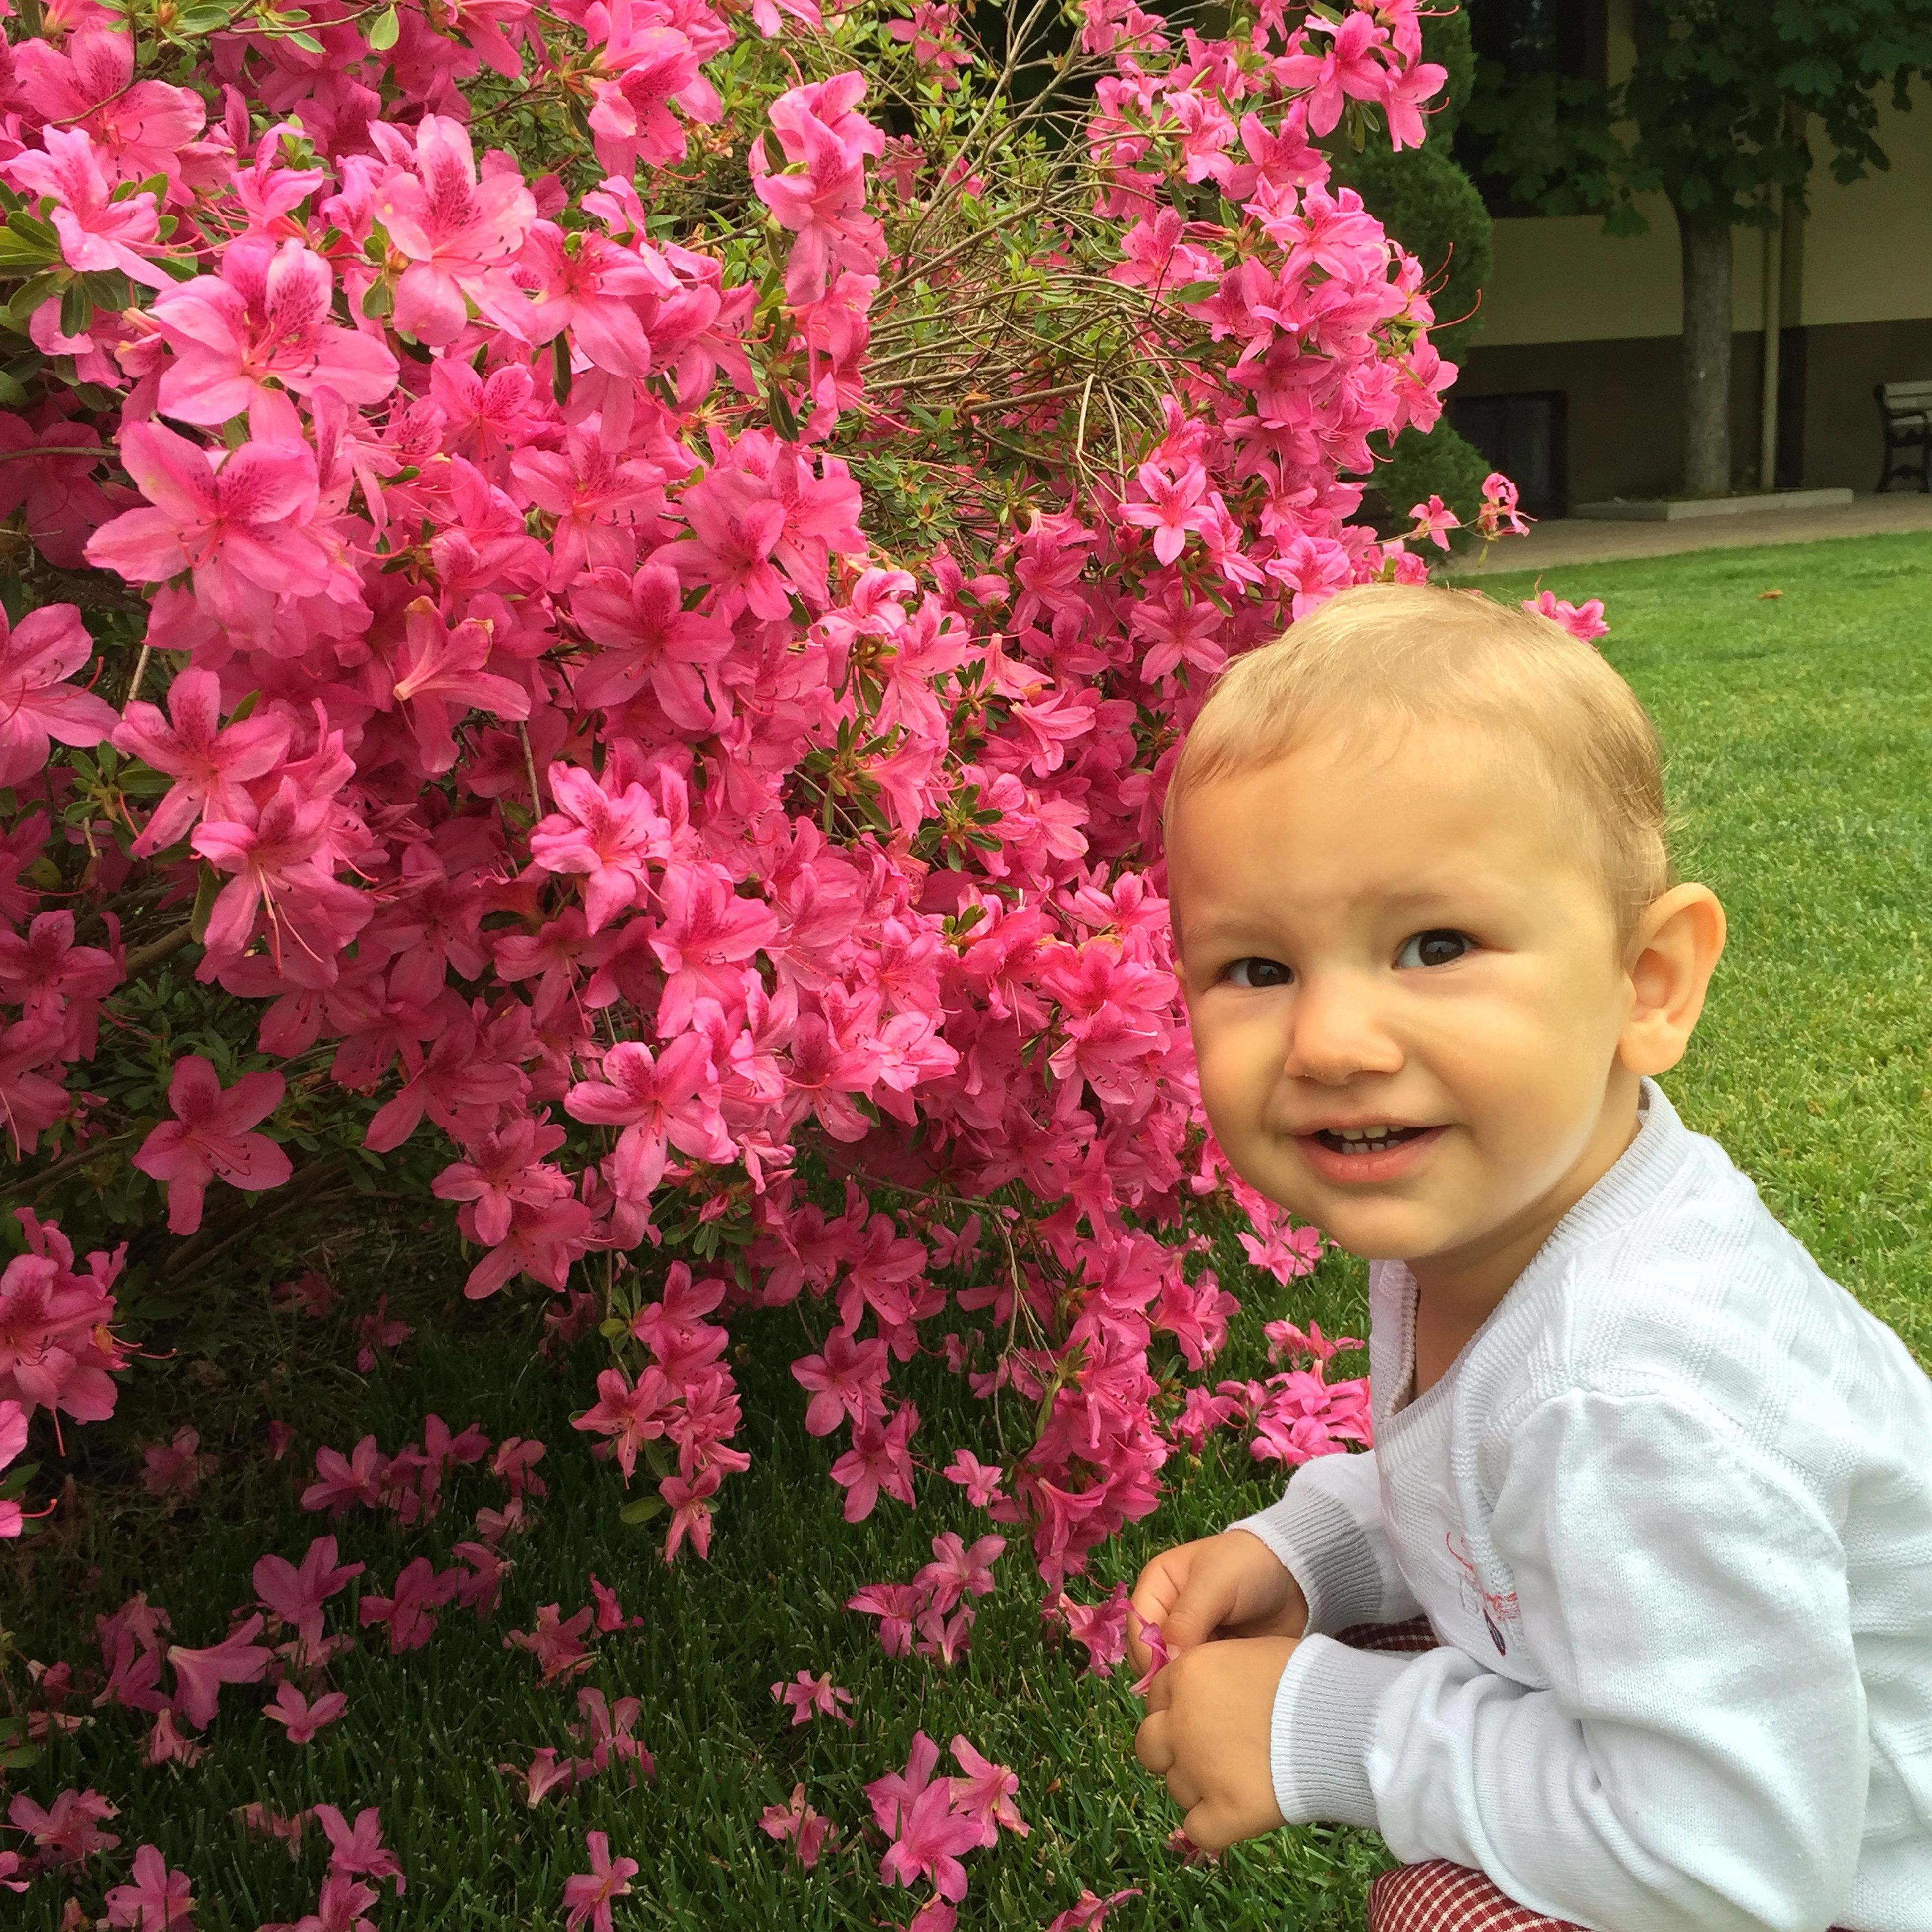 person, childhood, elementary age, innocence, flower, cute, looking at camera, portrait, lifestyles, casual clothing, girls, smiling, pink color, leisure activity, front view, boys, happiness, freshness